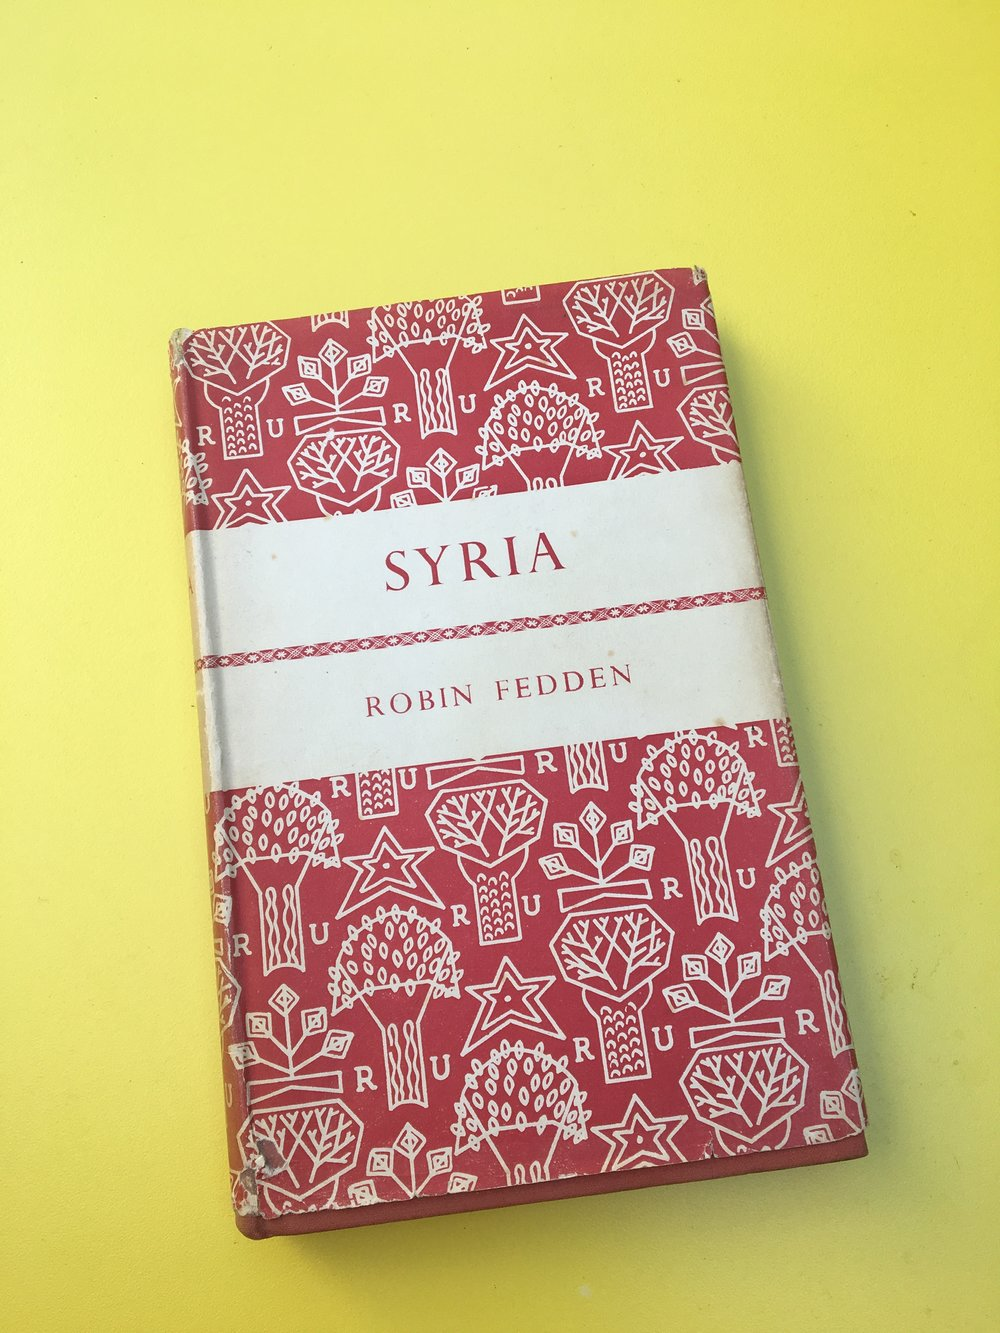 Syria by Robin Fedden featuring photography from Lee Miller